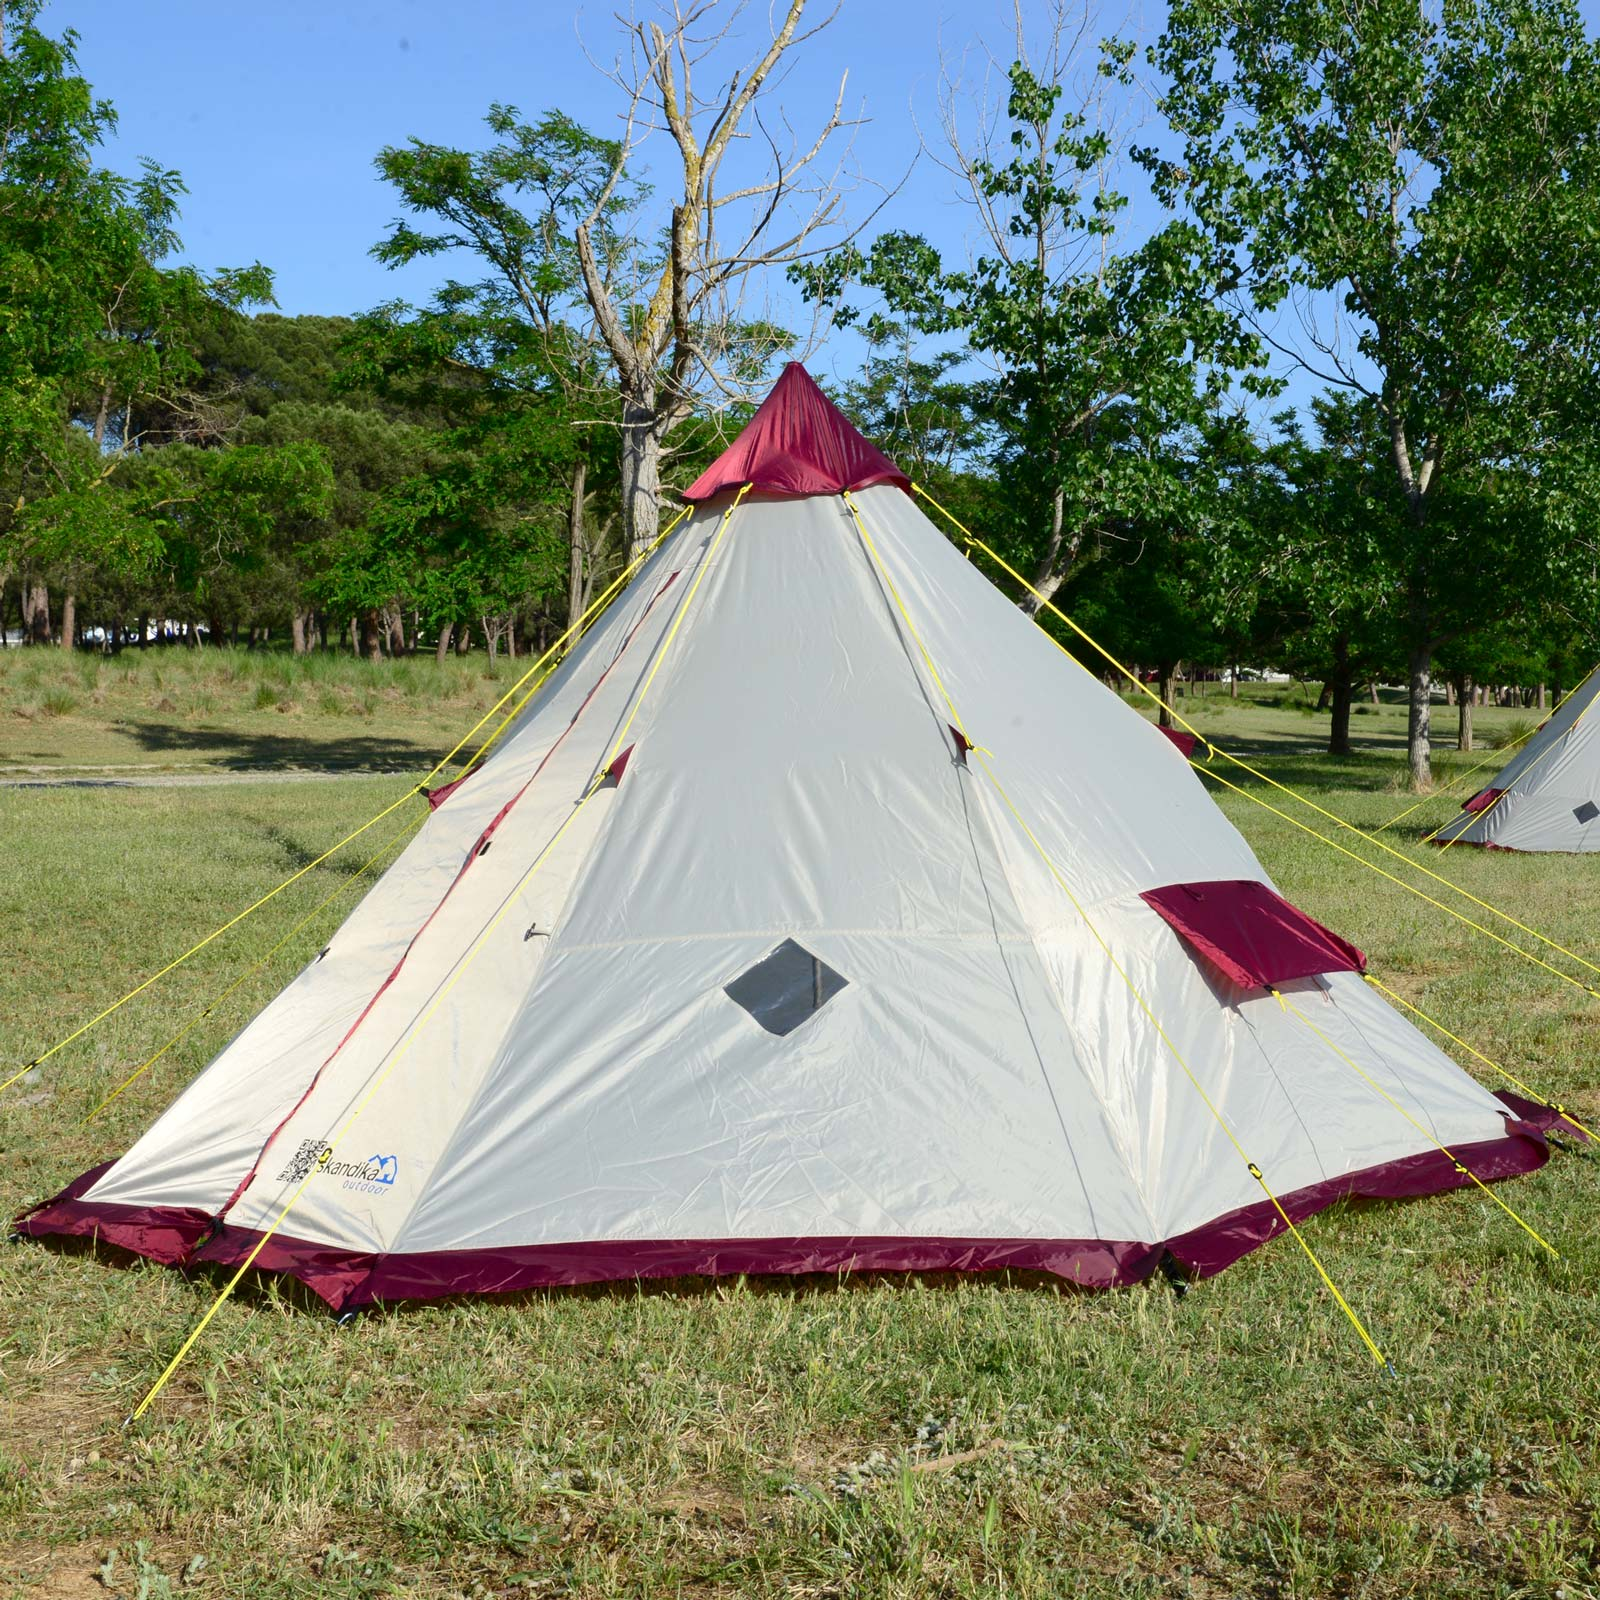 skandika tipii 200 tente camping tipi indien 6 pers 2m. Black Bedroom Furniture Sets. Home Design Ideas